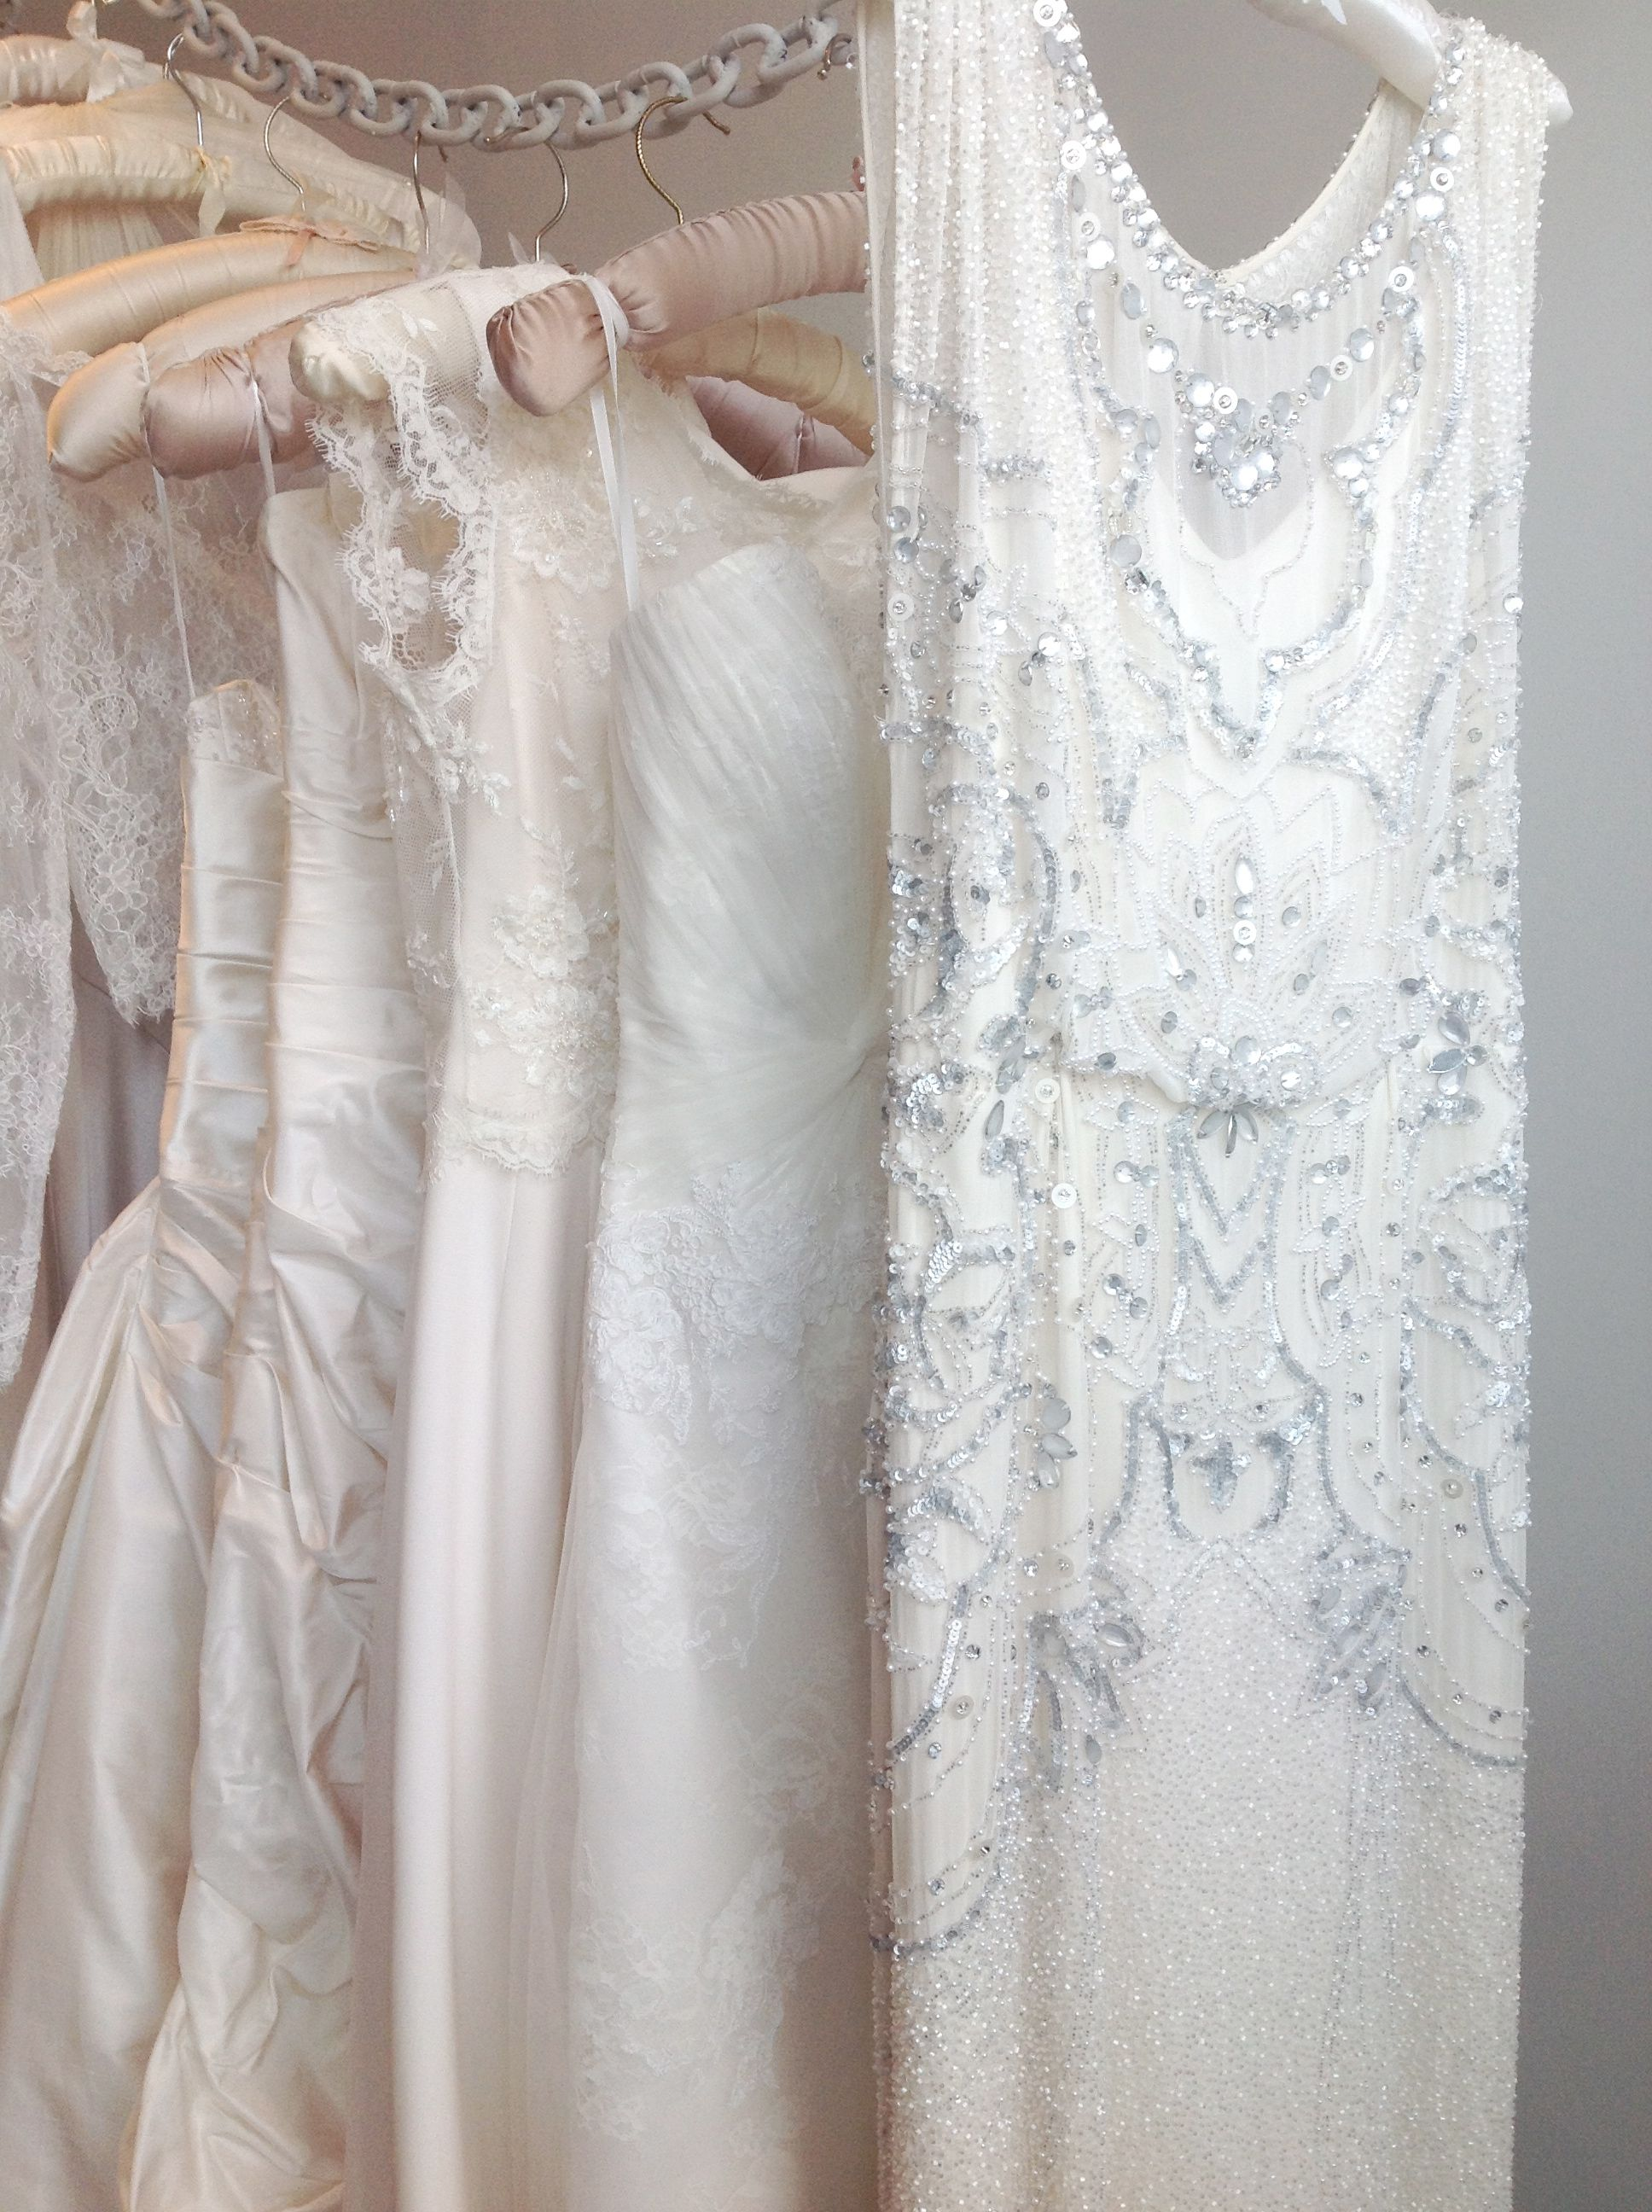 Beautiful Preloved Wedding Dresses On At Gillian Million London